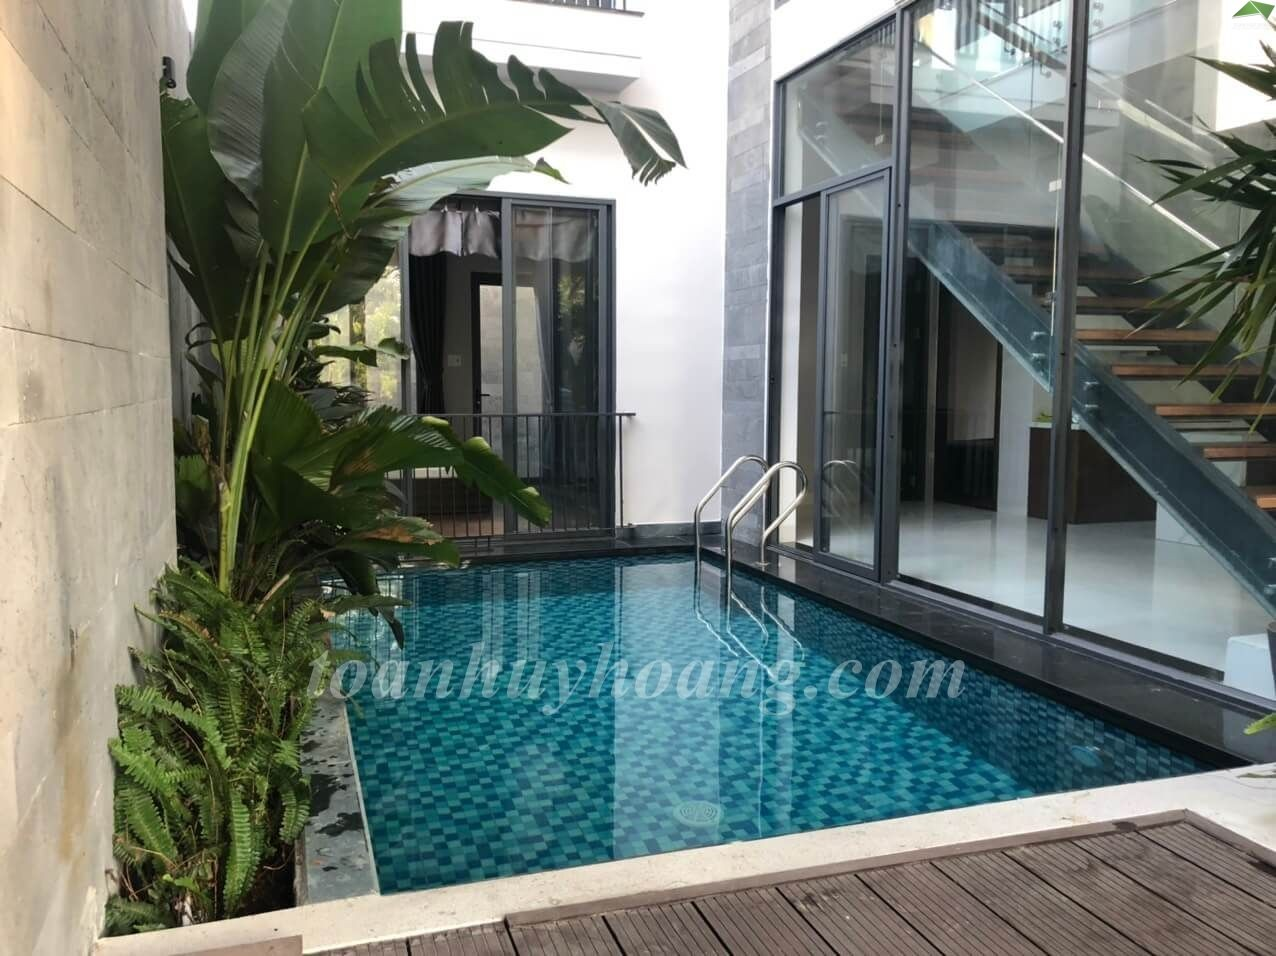 Rental Villa Swimming Pool